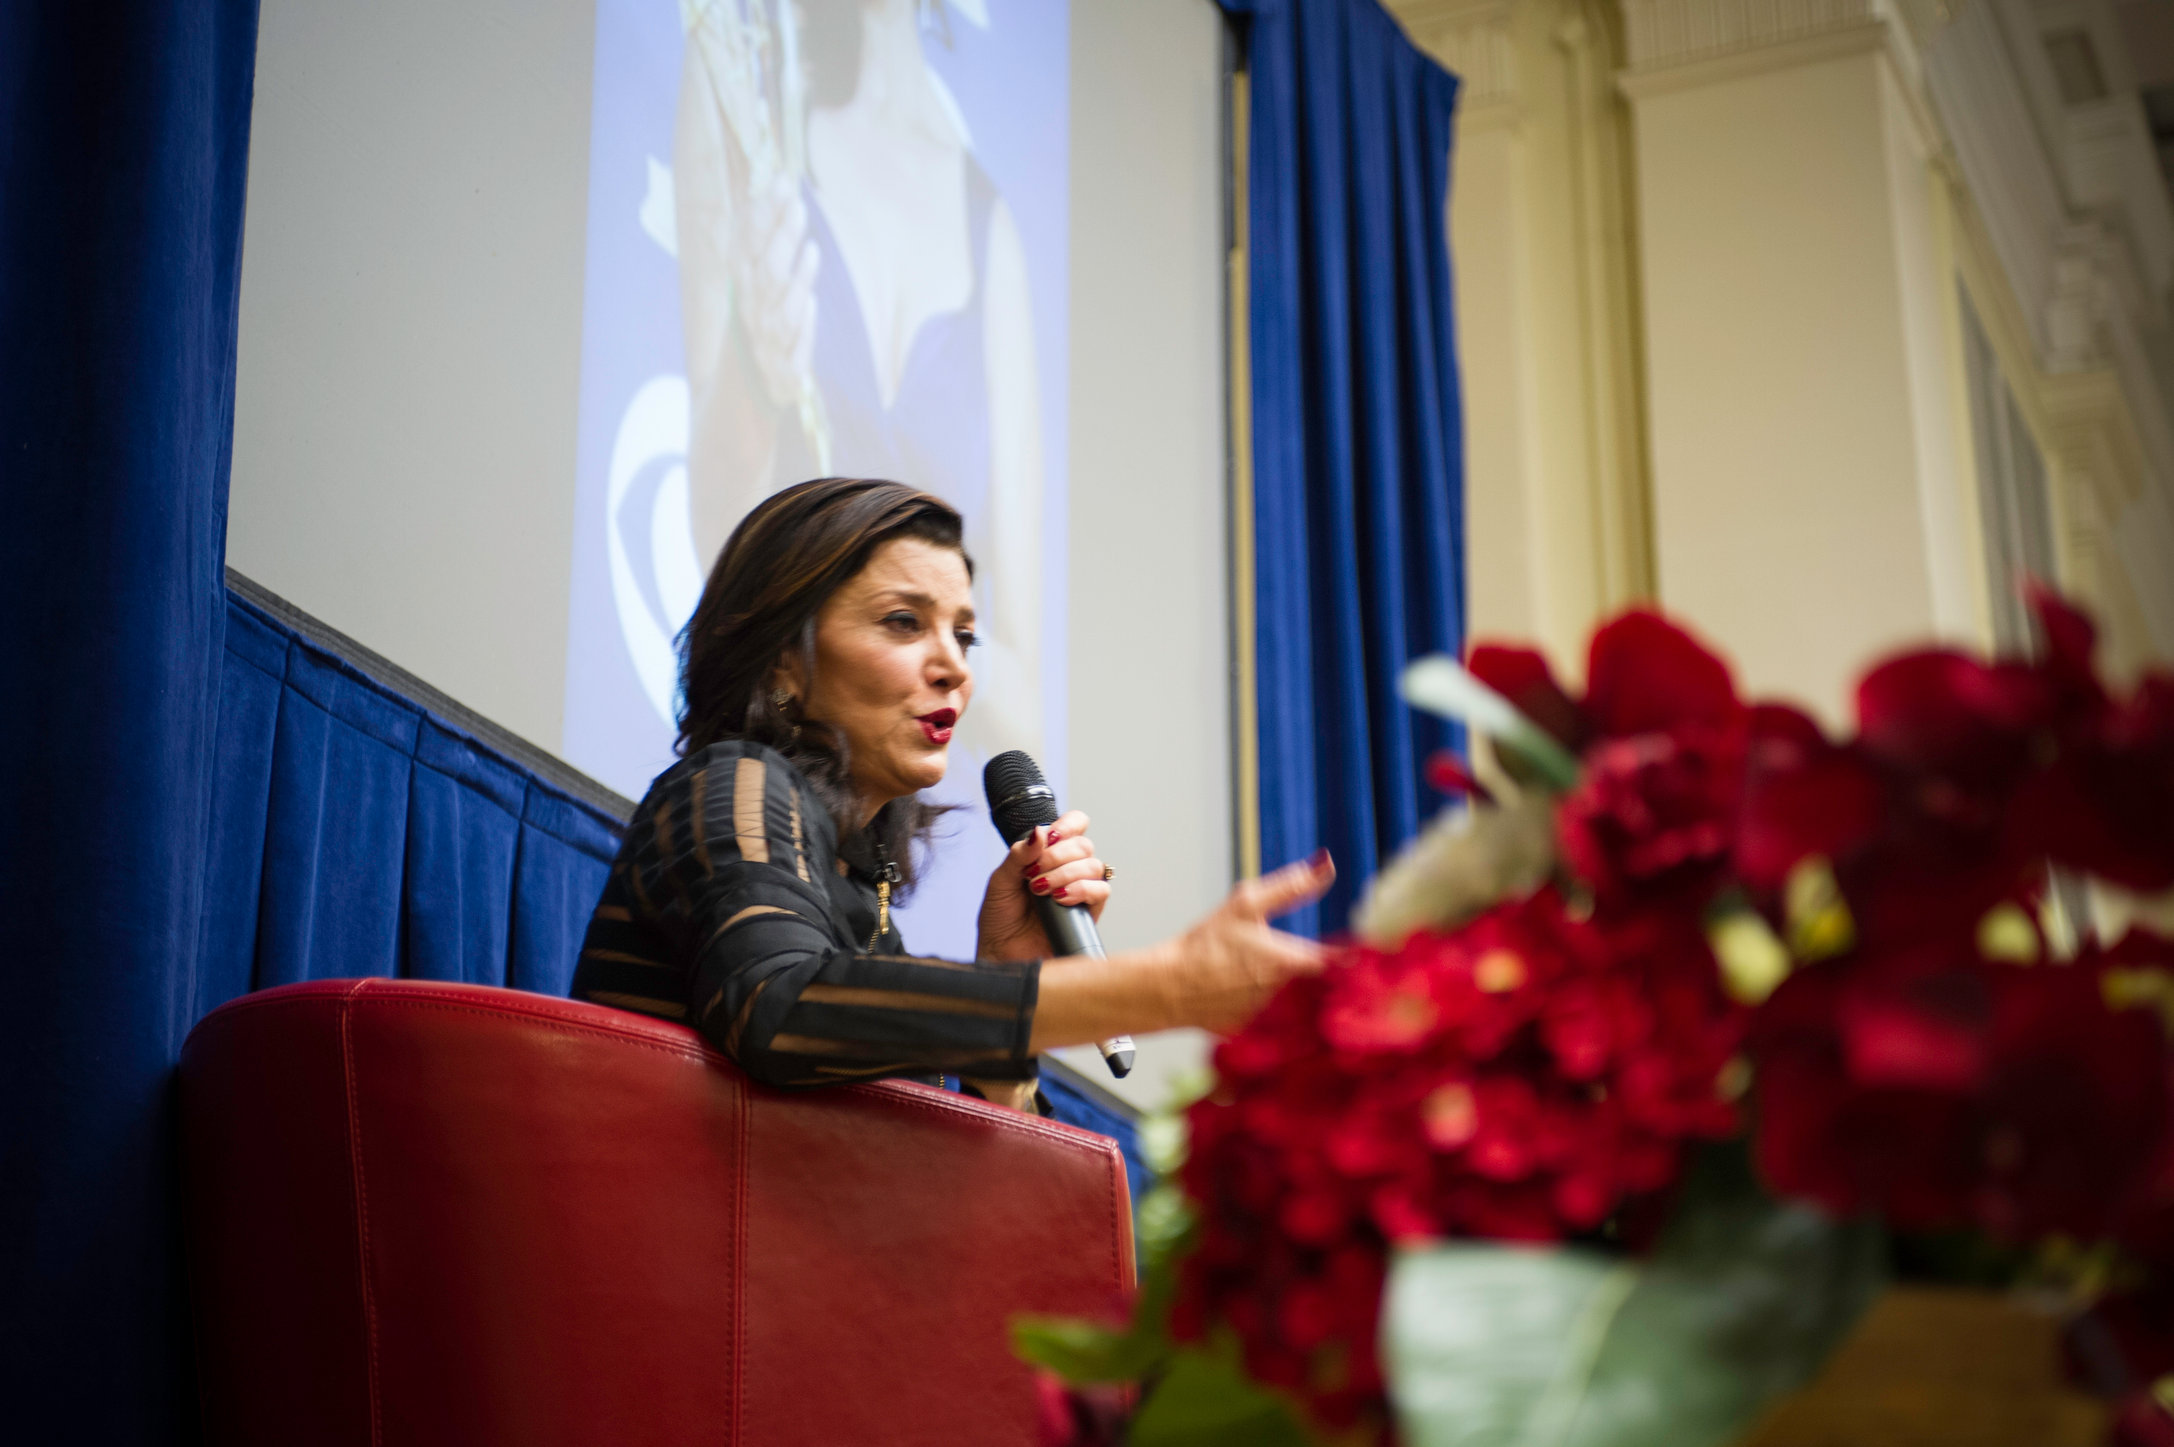 Ludovic_Robert_Photographer_Aneveningwith_Shohreh_Aghdashloo_November_2013-20131129-0333.jpg